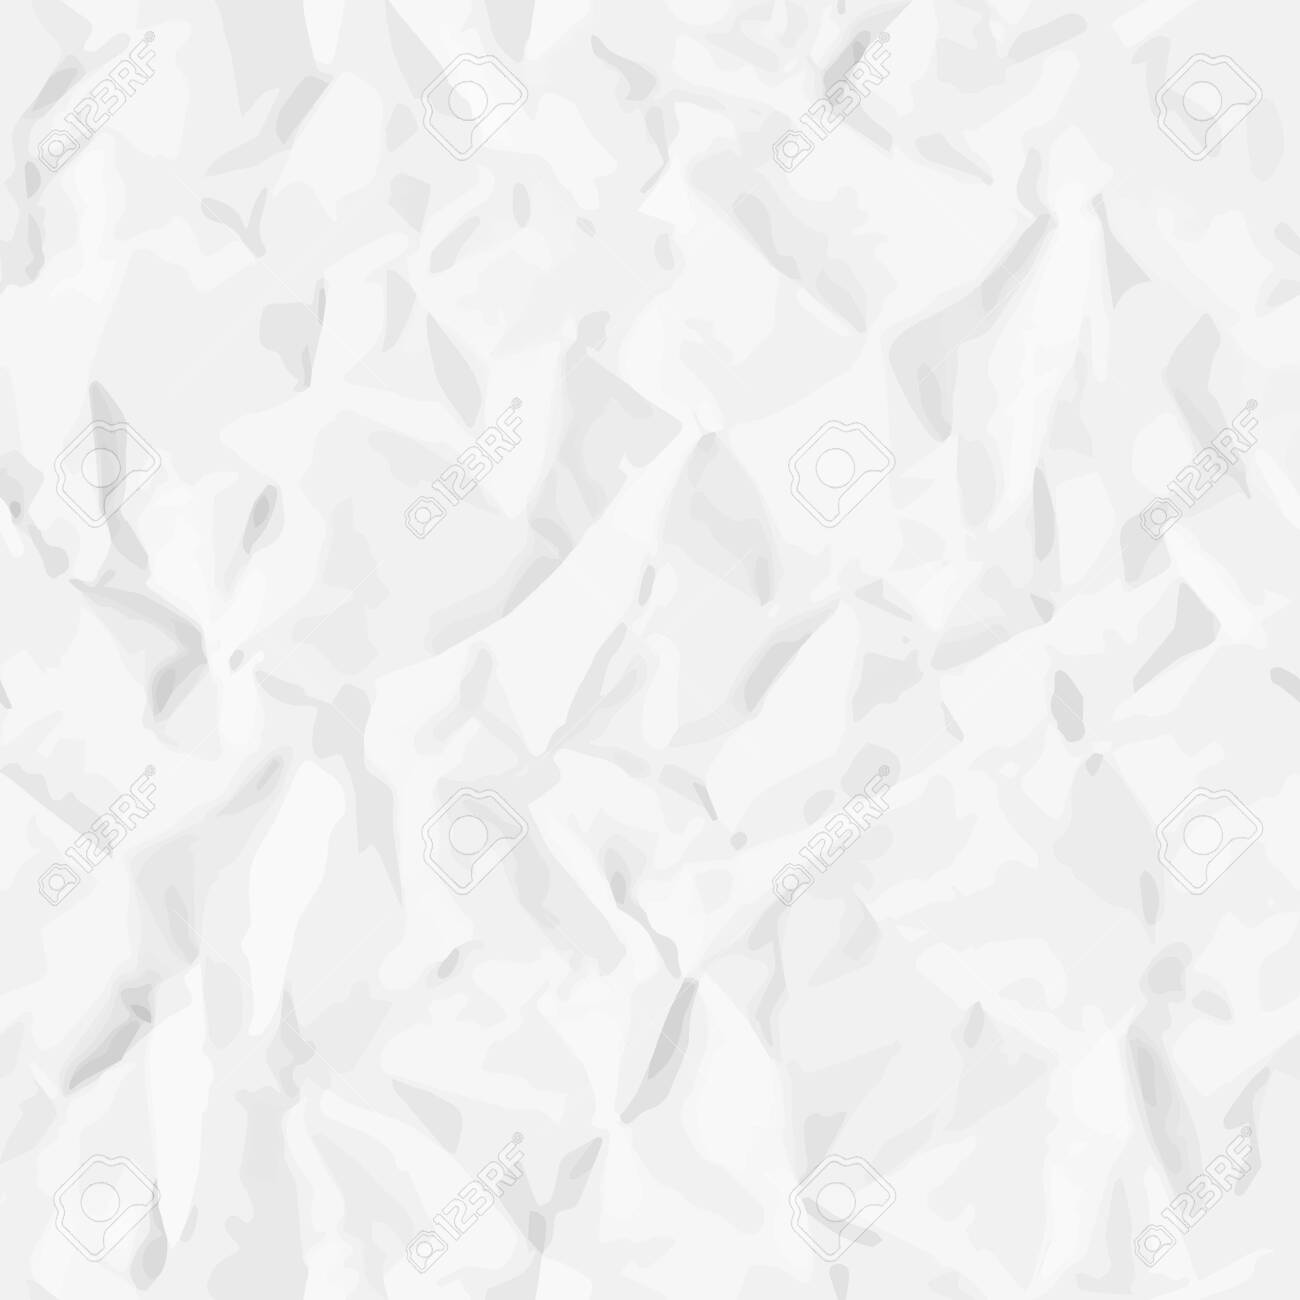 Realistic seamless pattern of crumpled (creased) paper. Vector texture for background - 141873592